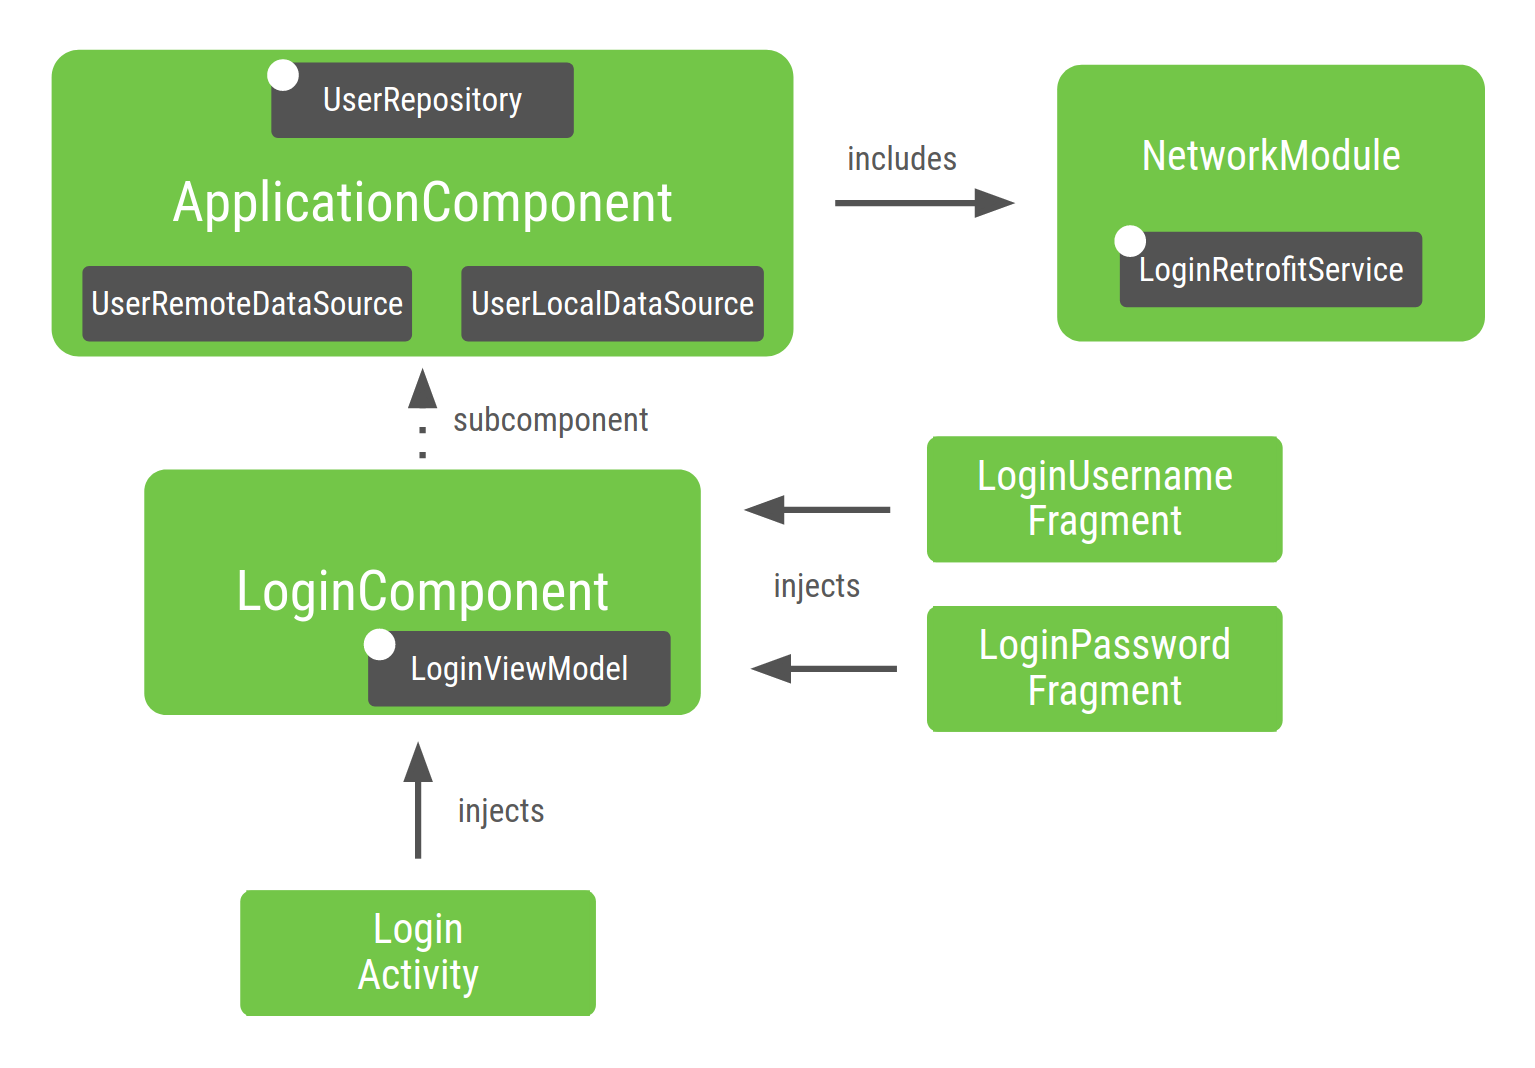 Application graph after adding the last subcomponent